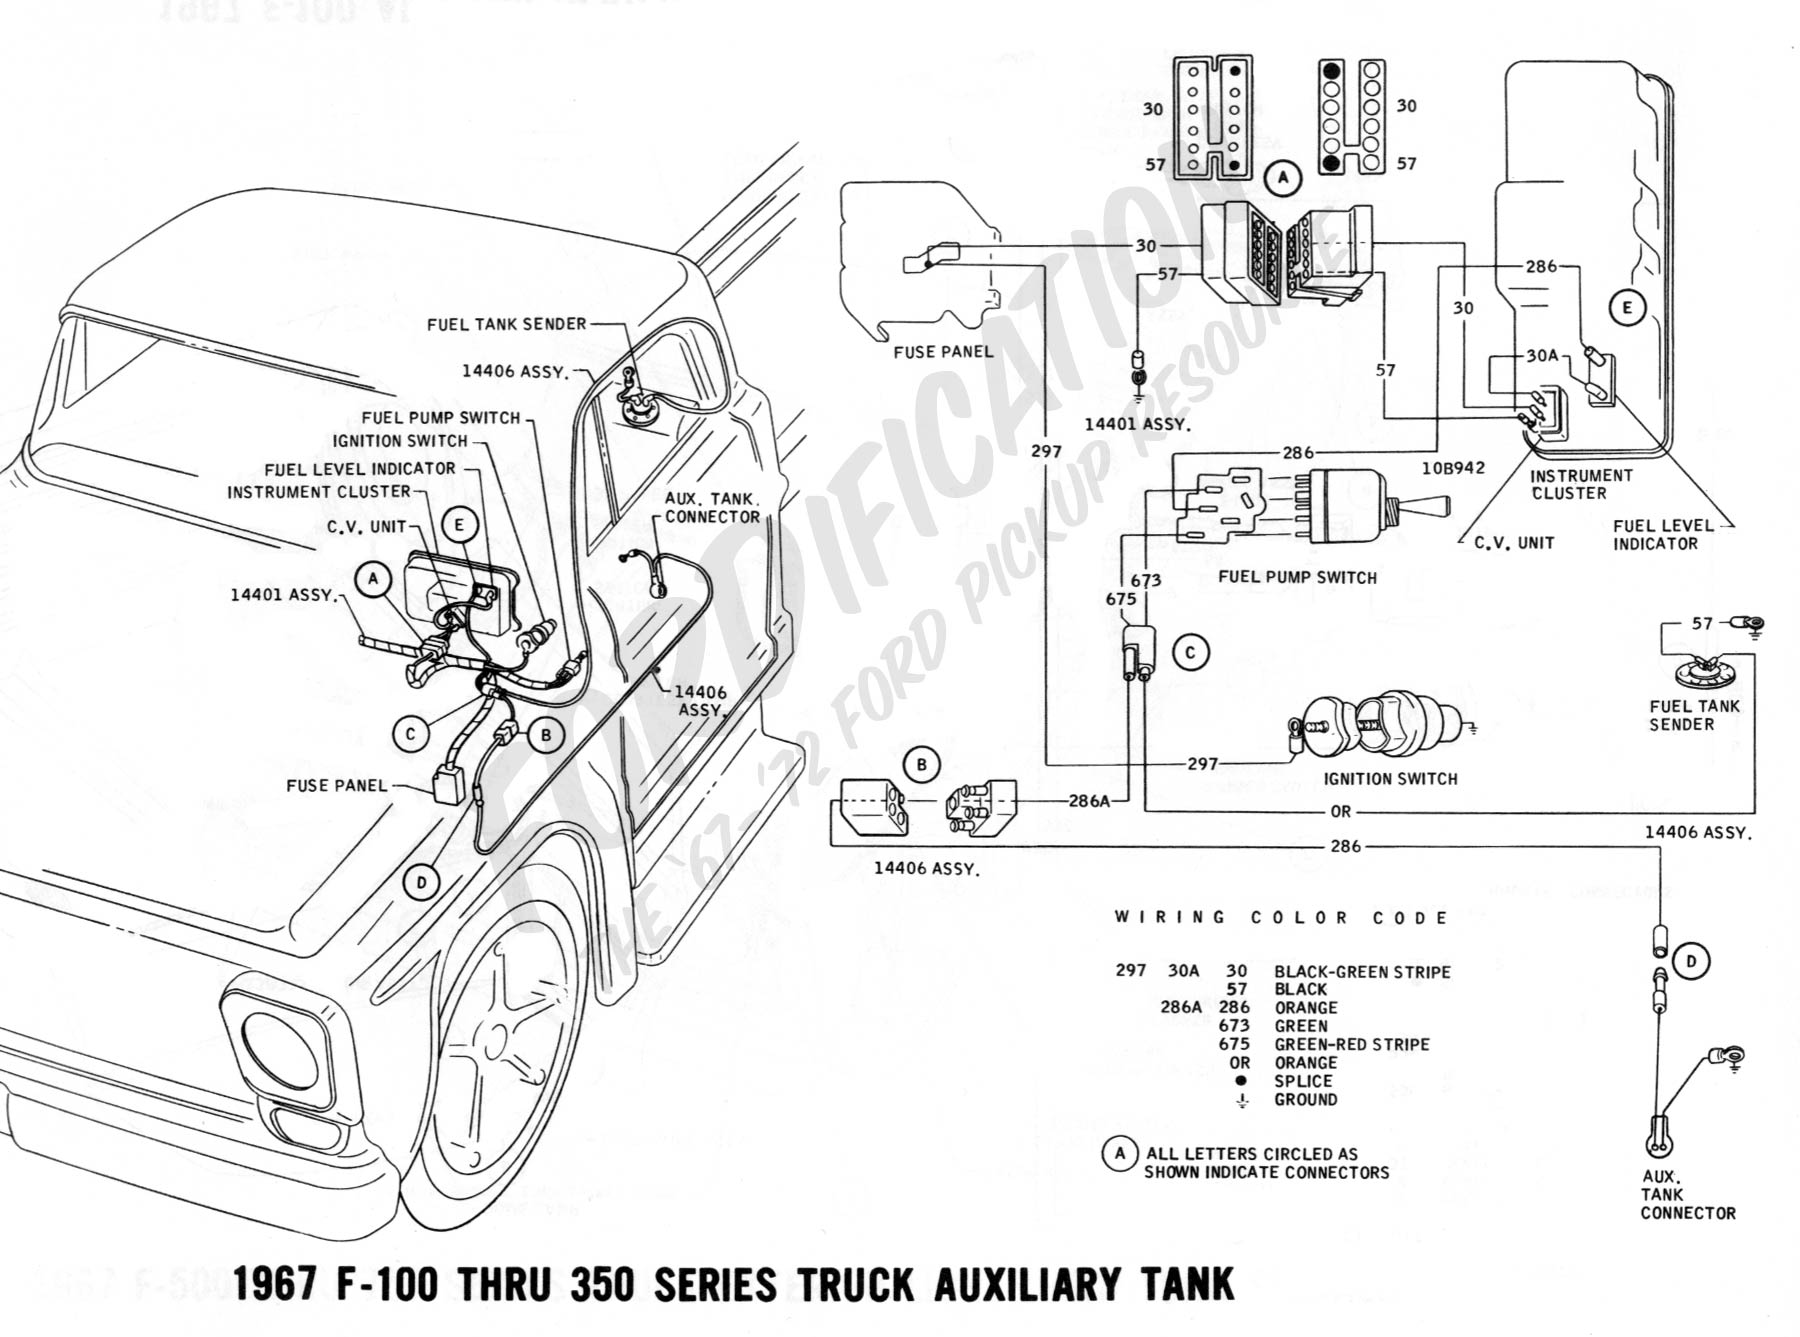 wiring 1967auxtank ford truck technical drawings and schematics section h wiring 1986 Ford F-150 Wiring Diagram at readyjetset.co